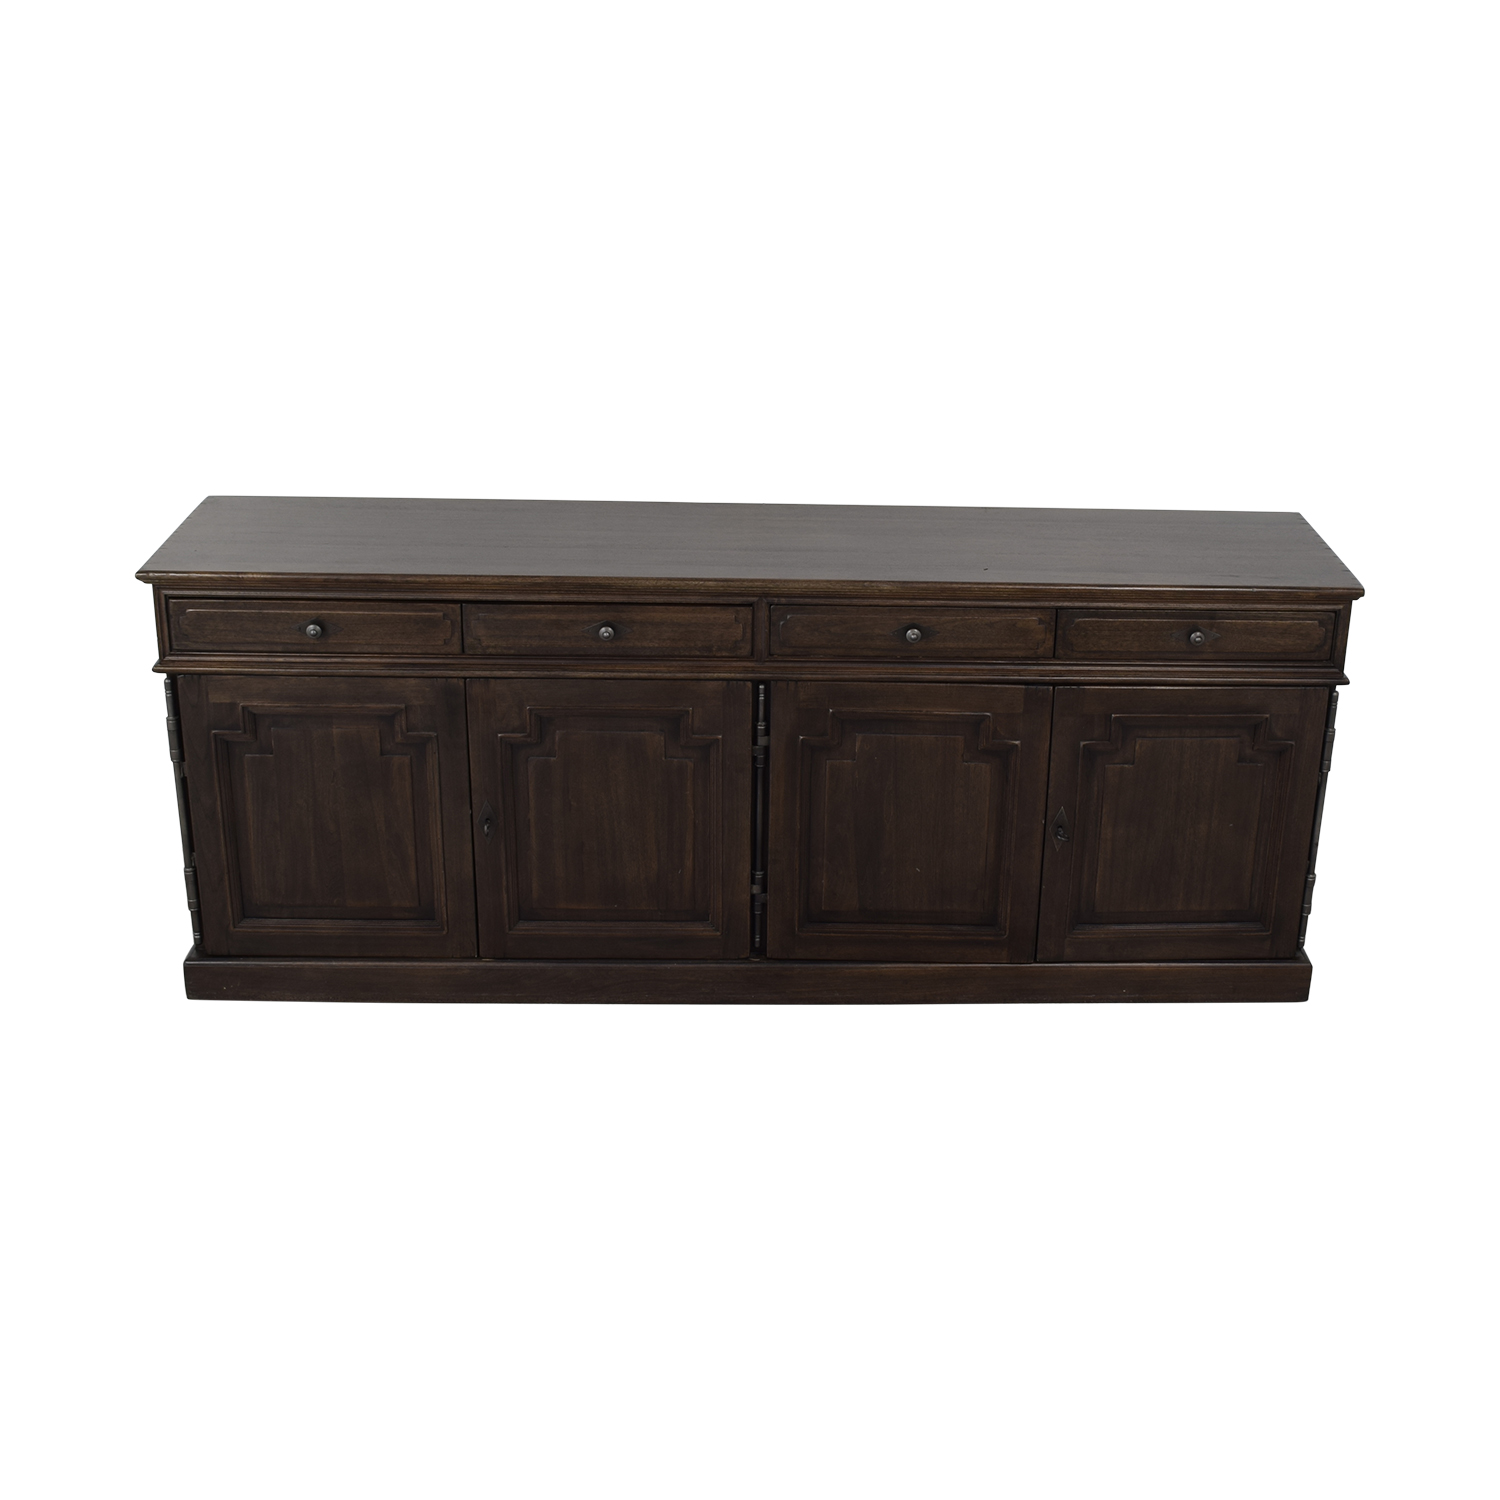 Restoration Hardware Restoration Hardware Montpellier Sideboard With Drawers dimensions